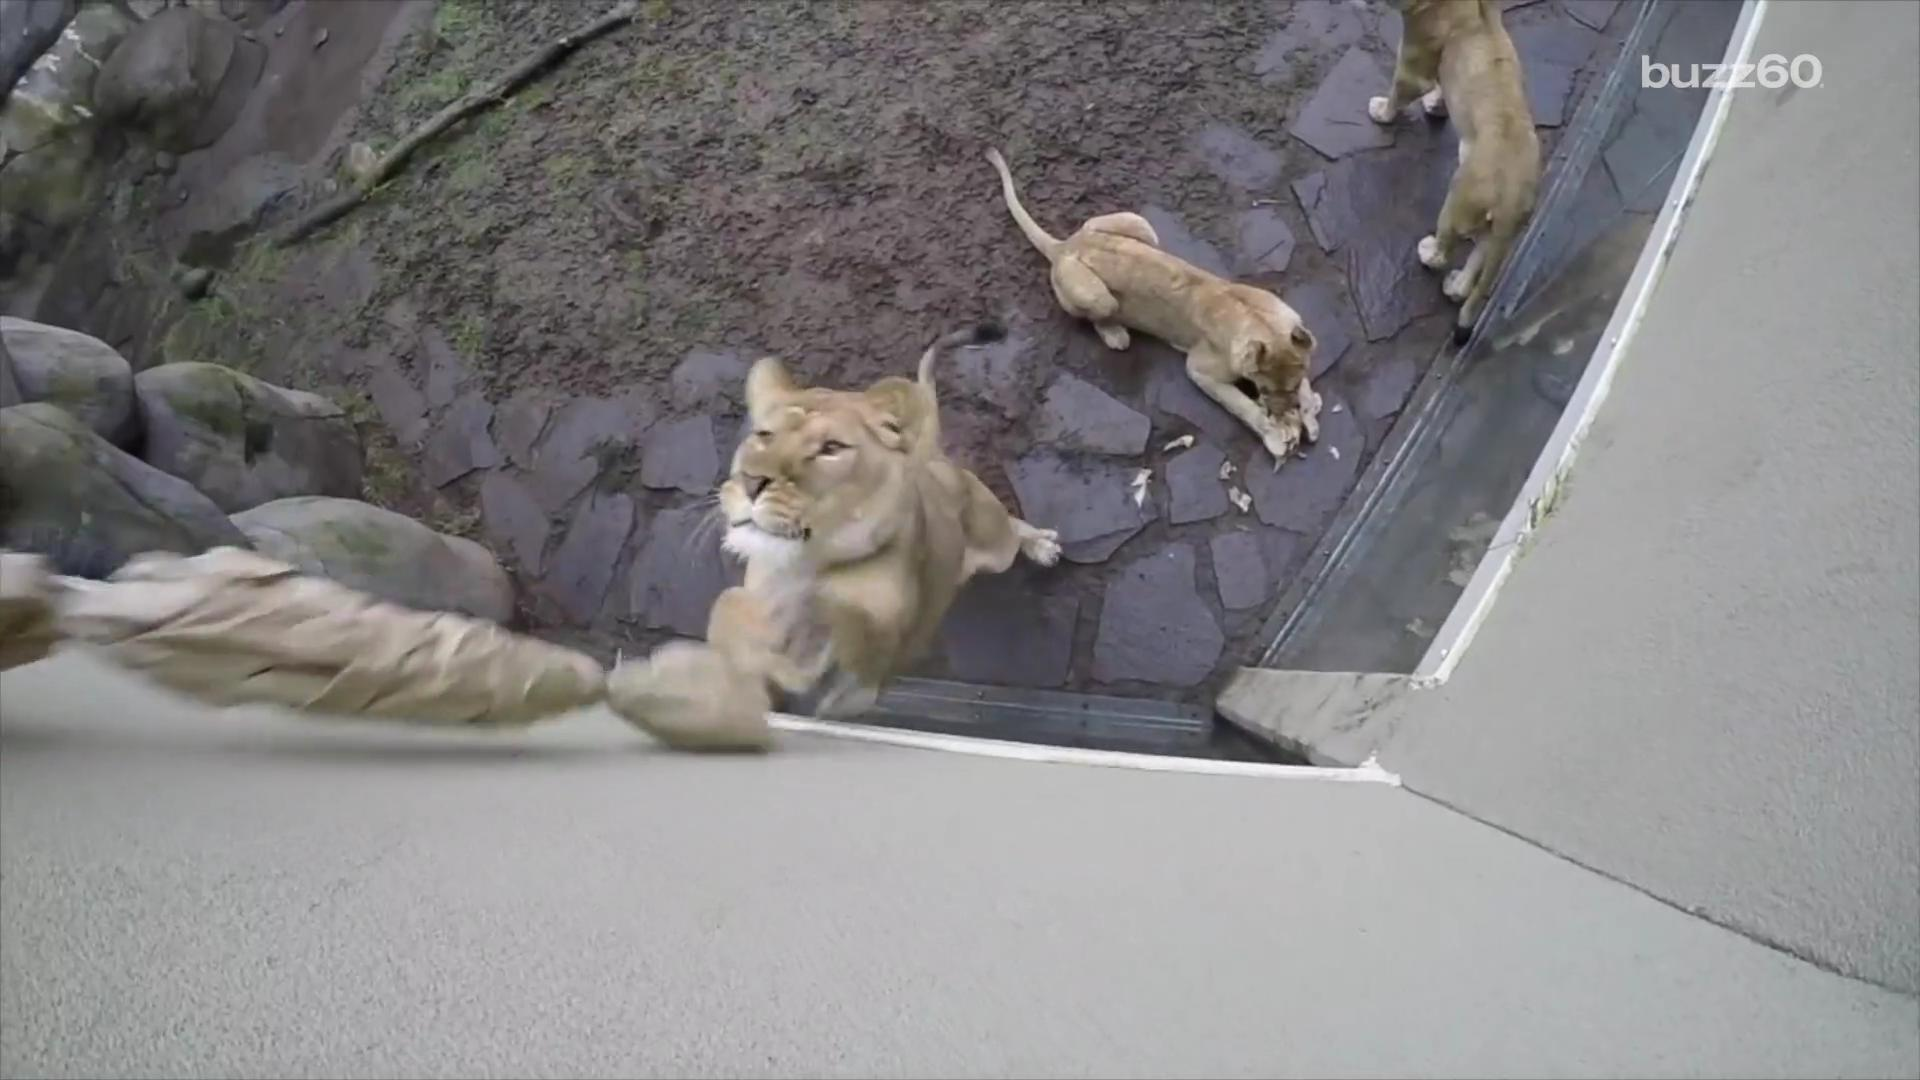 This Toy Proves Lions are Just Big House Cats